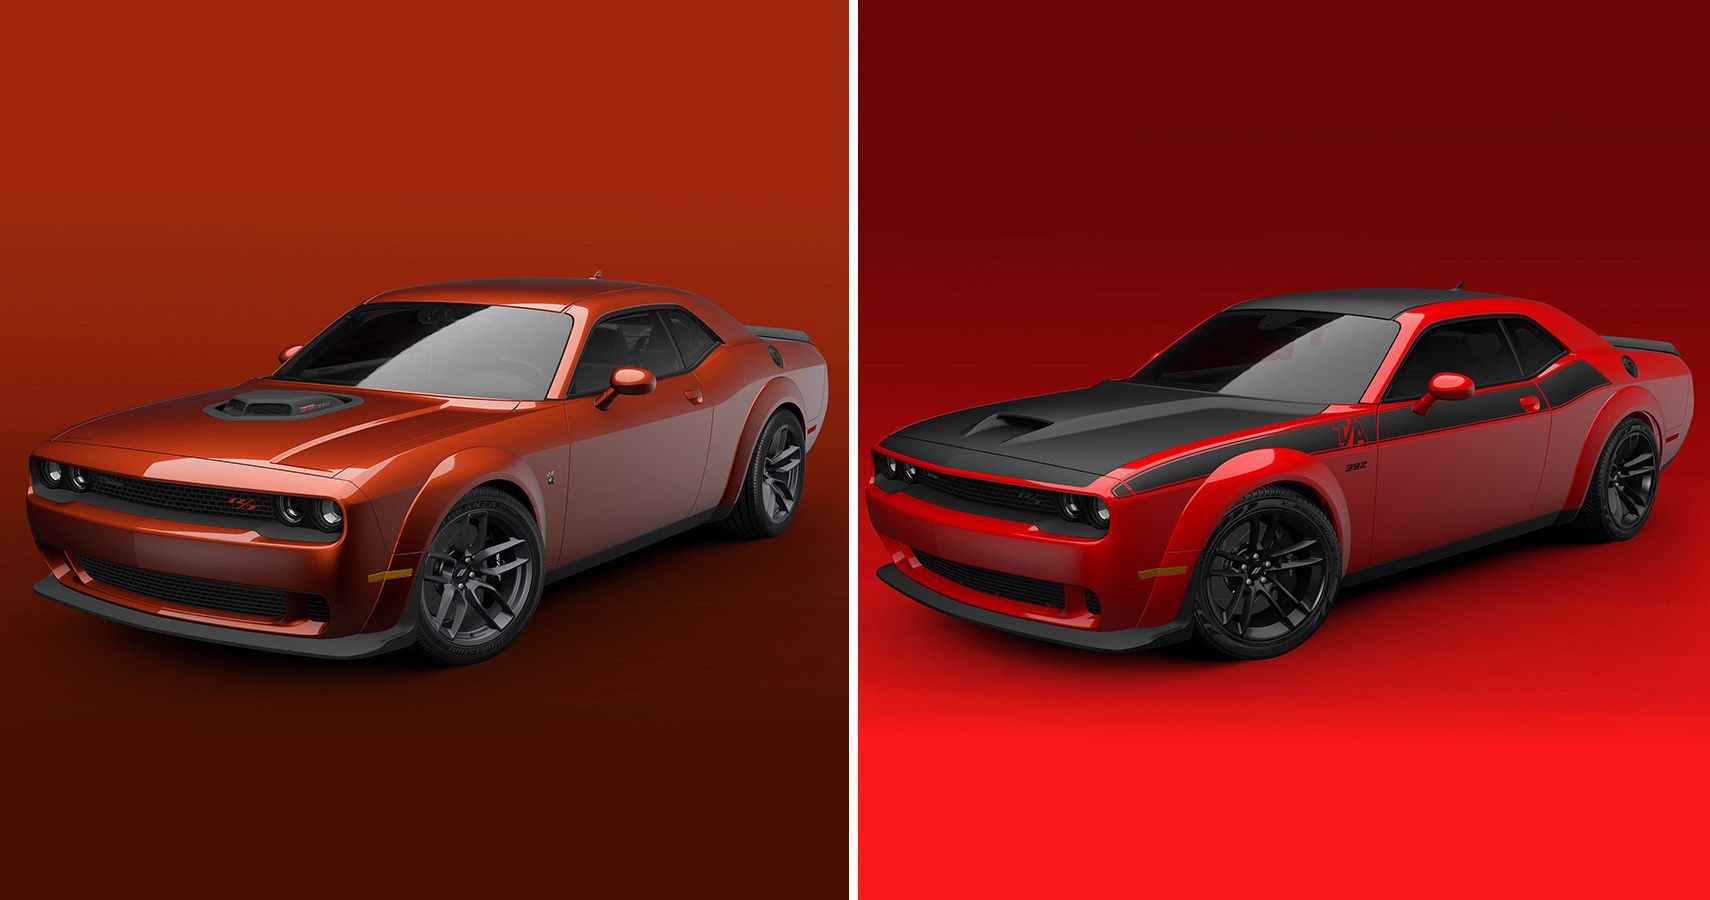 2021 Challenger R/T Scat Pack Shaker And T/A 392 Widebodies Unveiled